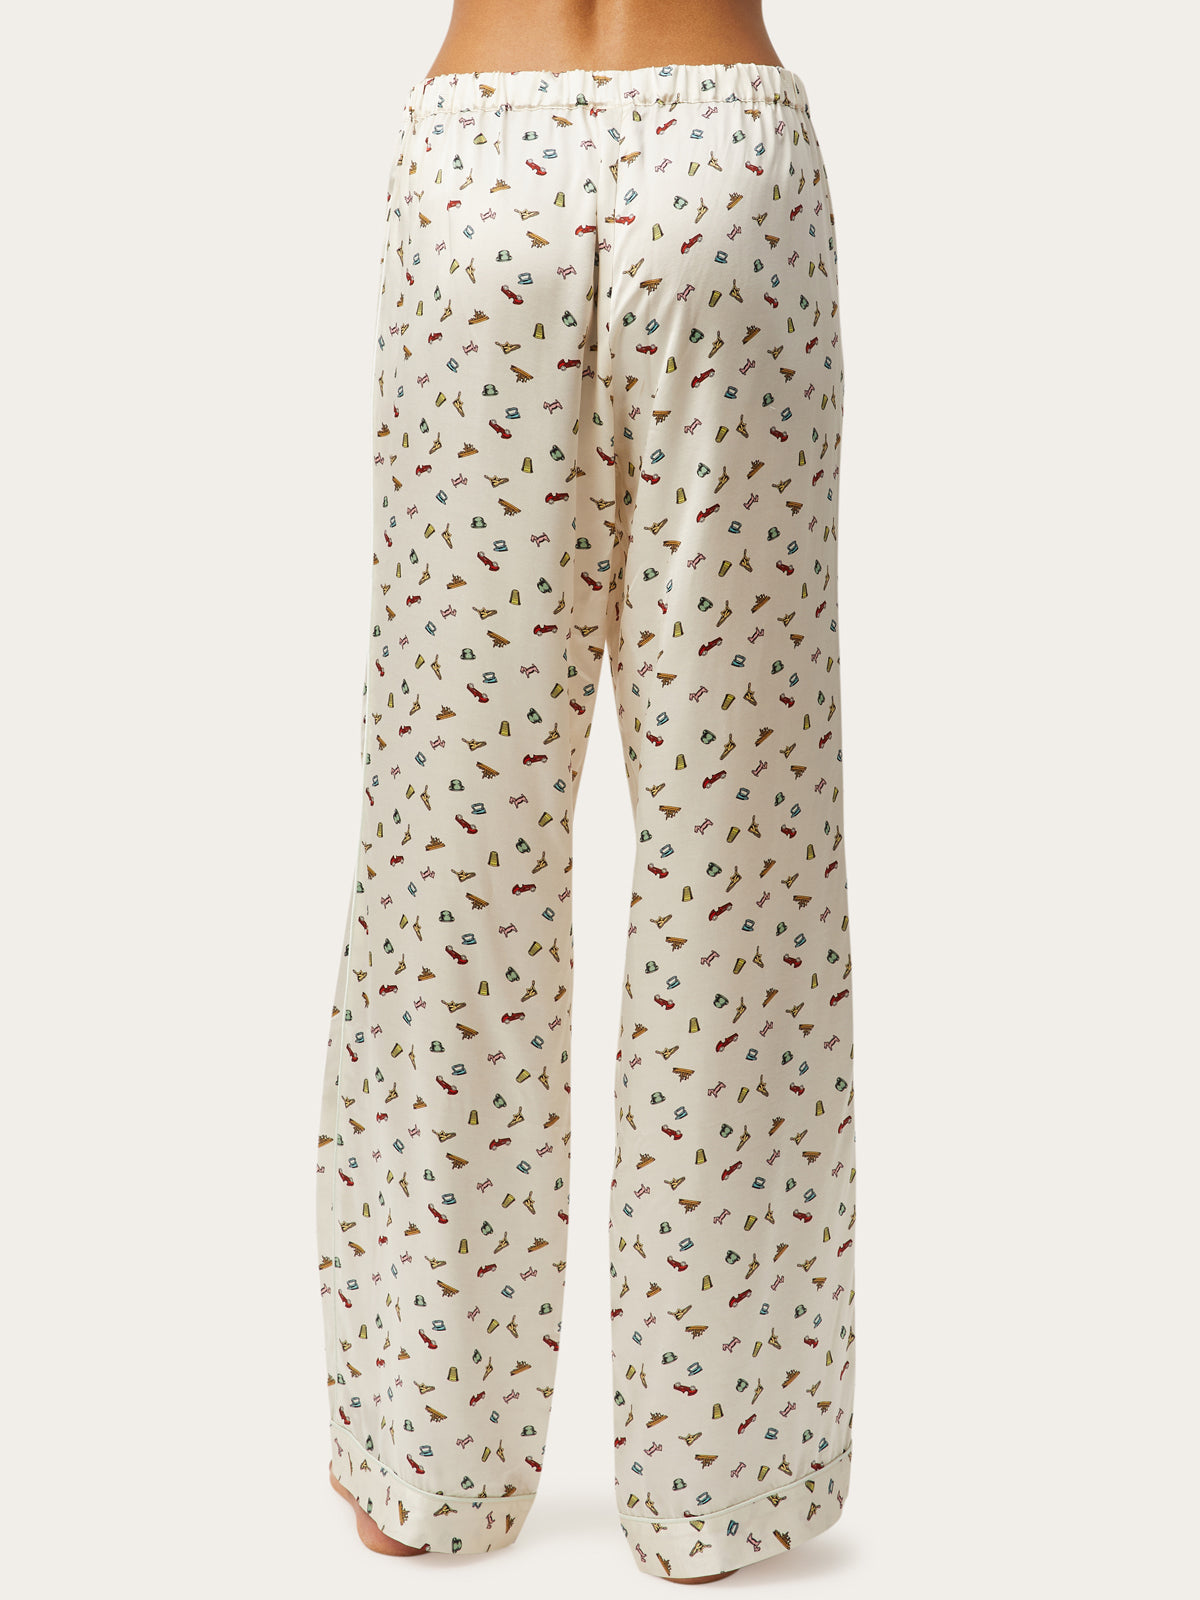 Parker Pant in Token Print By Morgan Lane